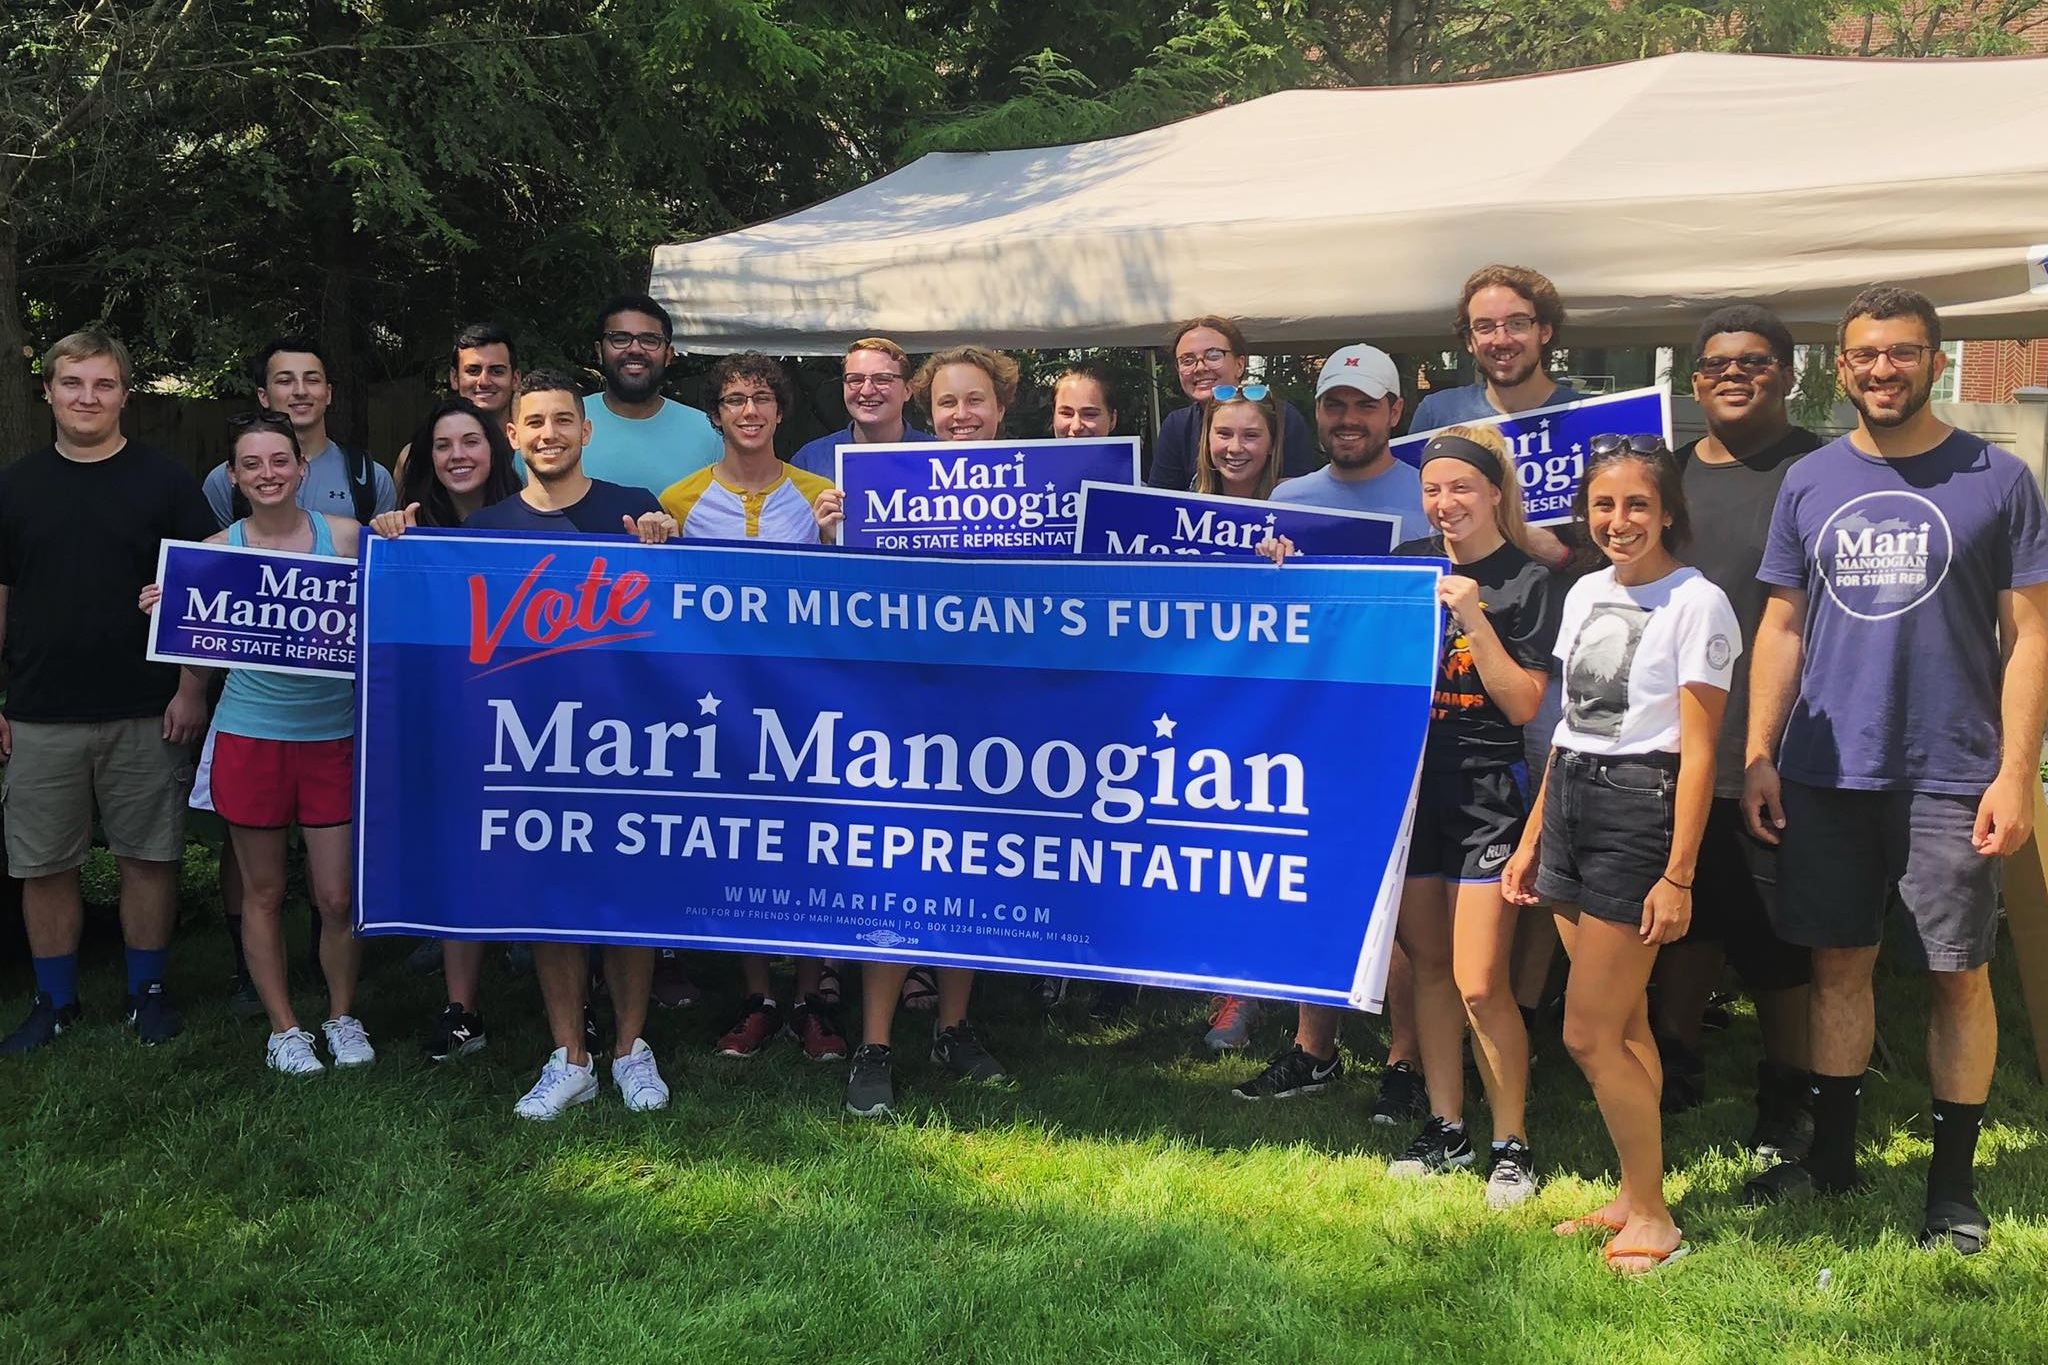 Take Action - Want to get involved in our campaign? Join #TeamMari!